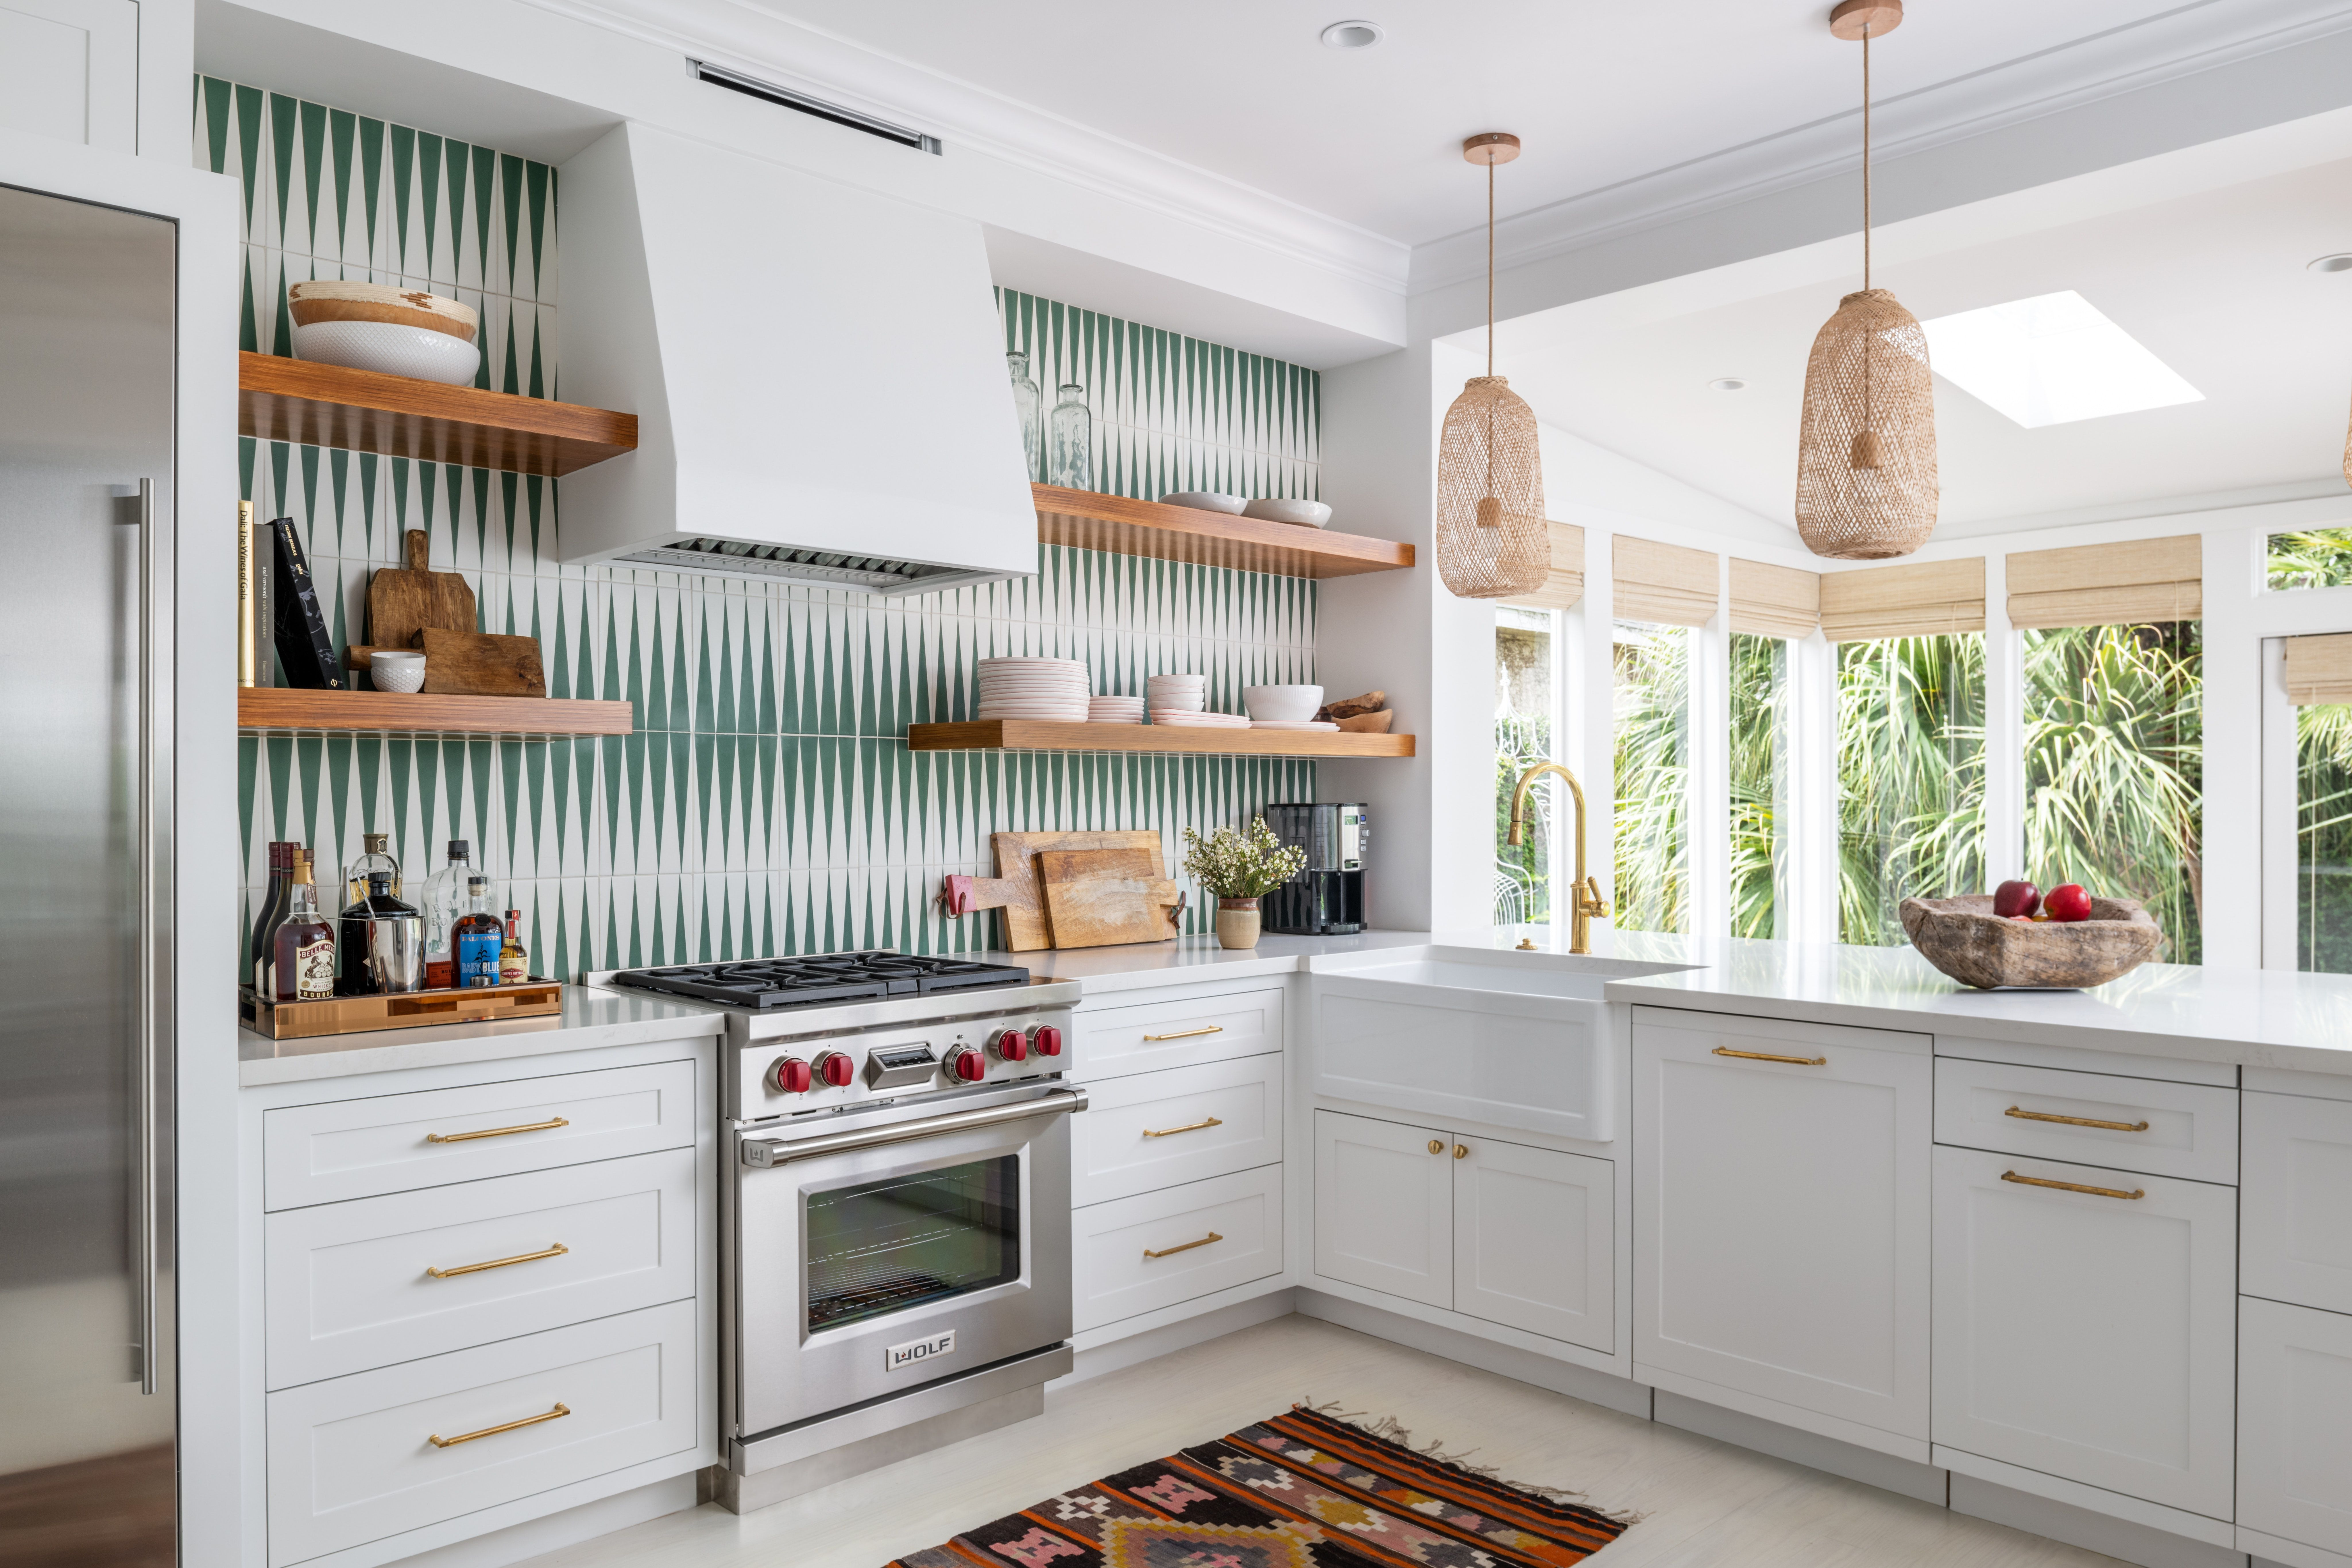 A Bright Kitchen With Open Shelving And Green Patterned Tiles By